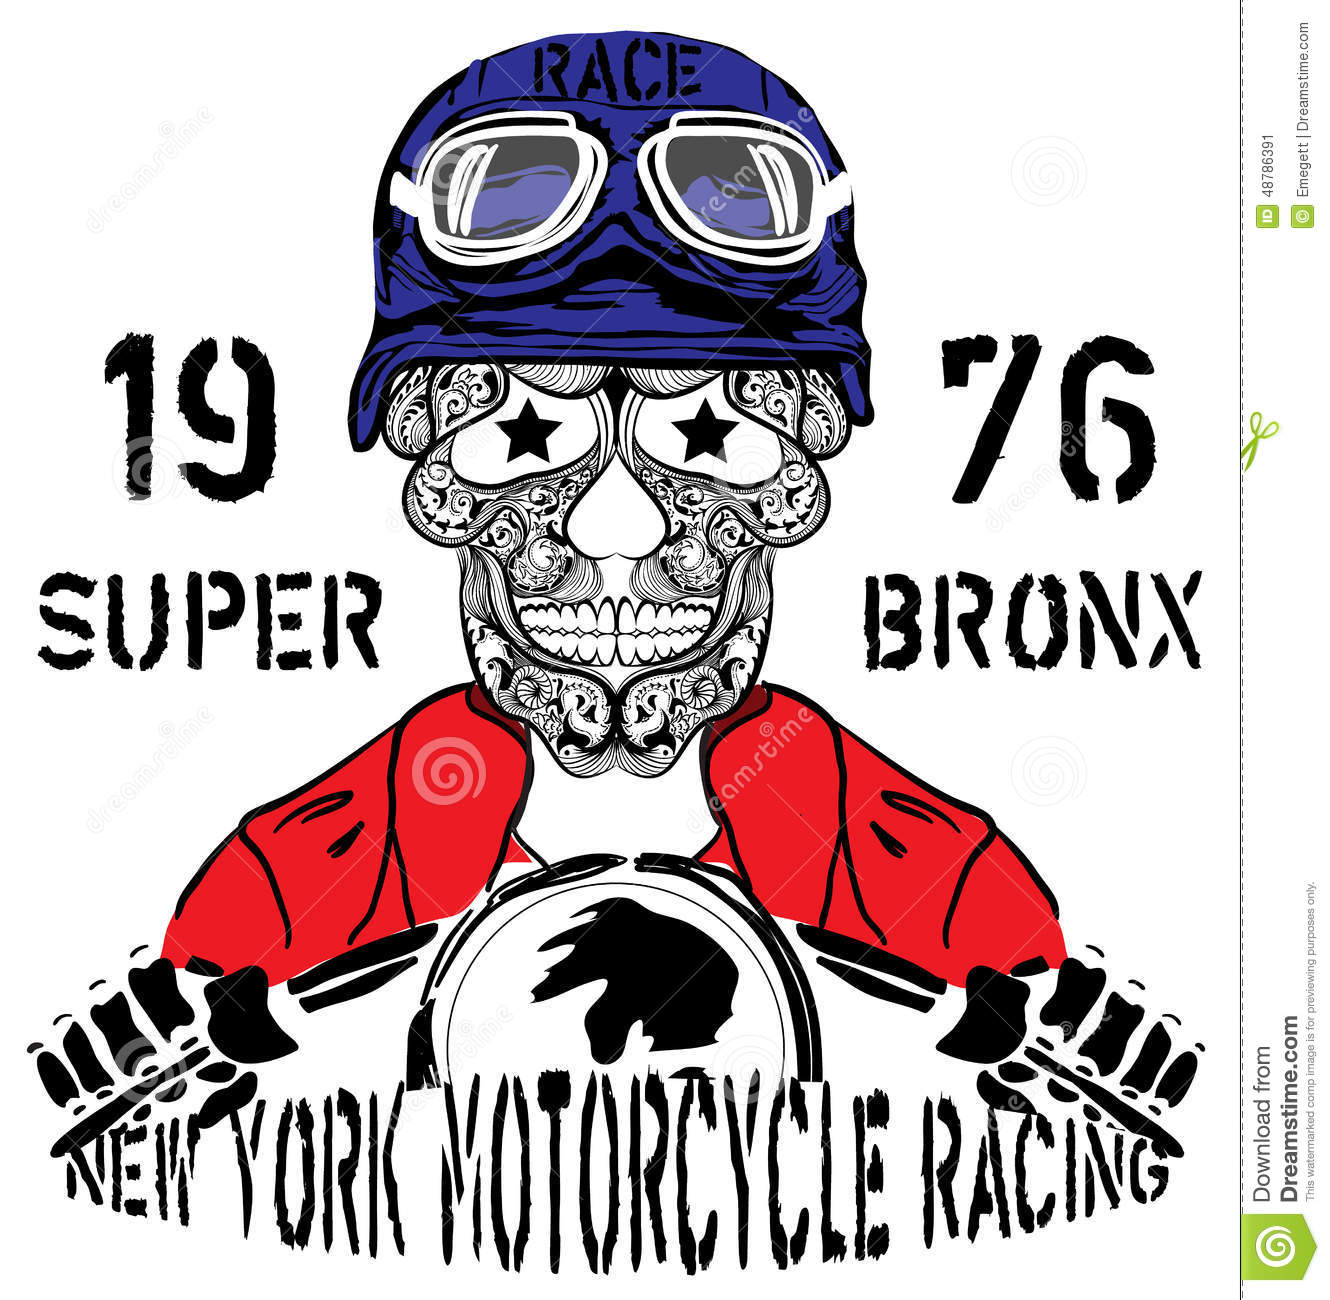 Design t shirts graphic - Skull Motorcycle New York Racing Man T Shirt Graphic Design Stock Image